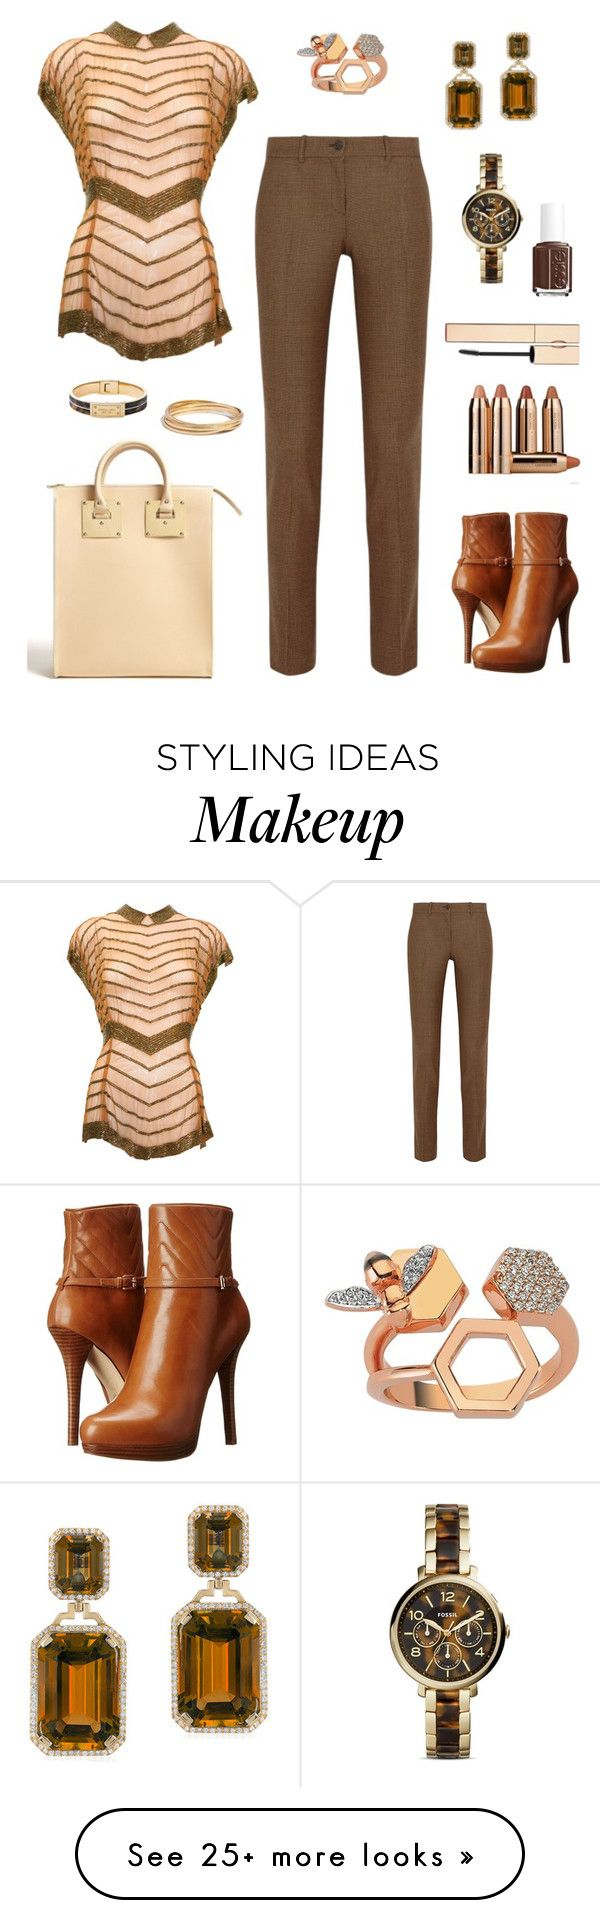 """""""Chevron Outfit Only Contest"""" by tippi-h on Polyvore featuring Michael Kors, MICHAEL Michael Kors, Bee Goddess, Madewell, Goshwara, FOSSIL, Sephora Collection, Essie and Clarins"""